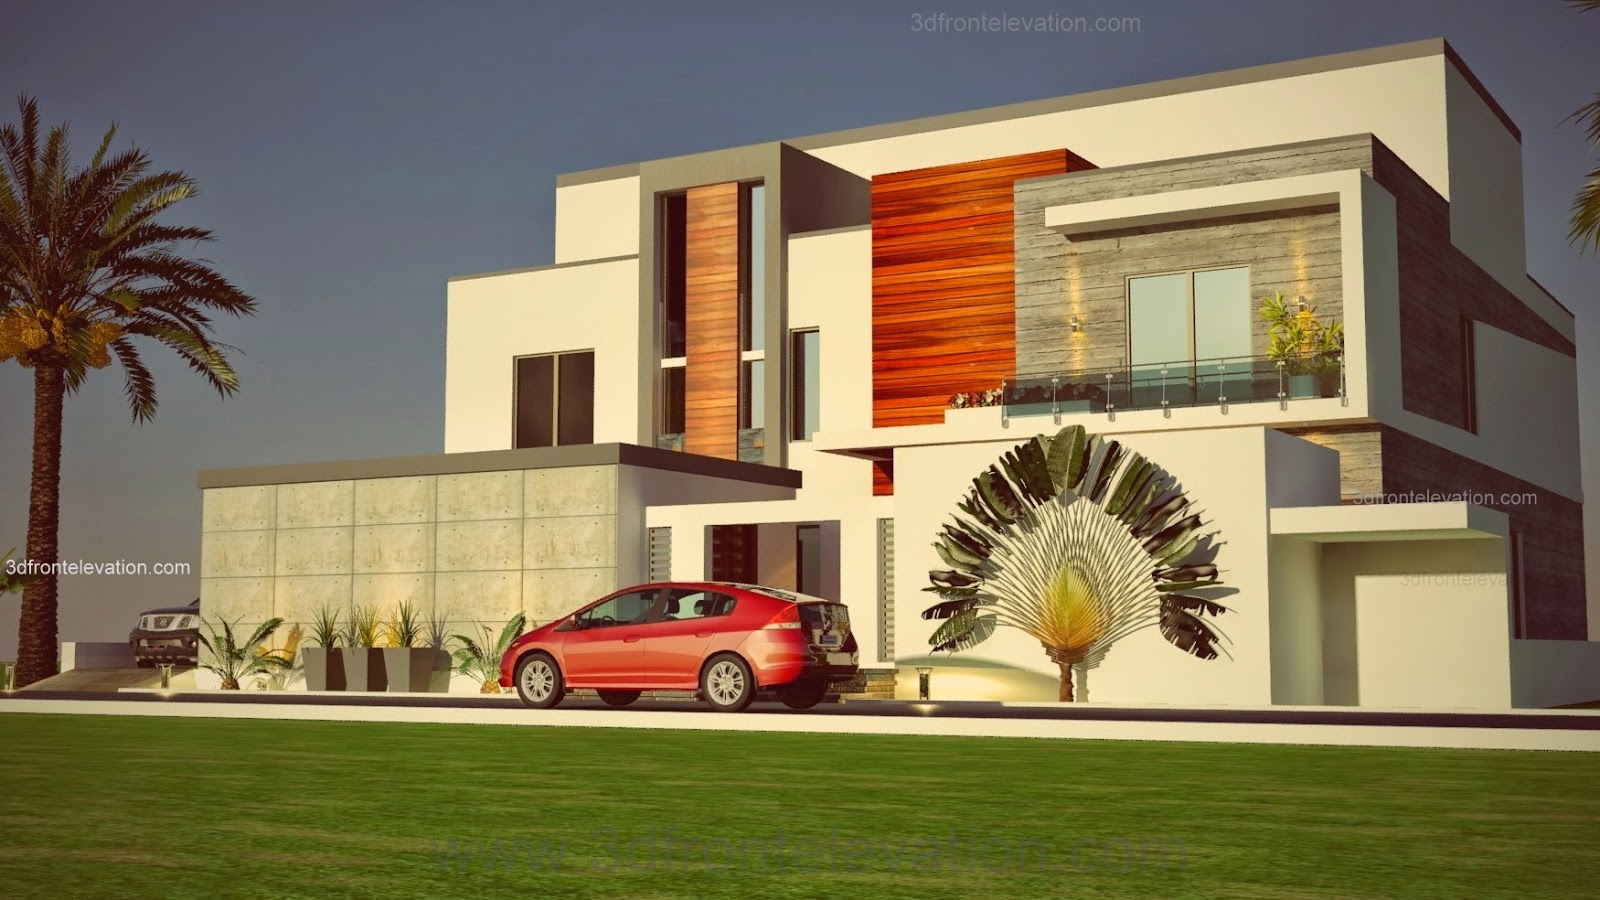 Front Elevation House Dubai : D front elevation portfolio